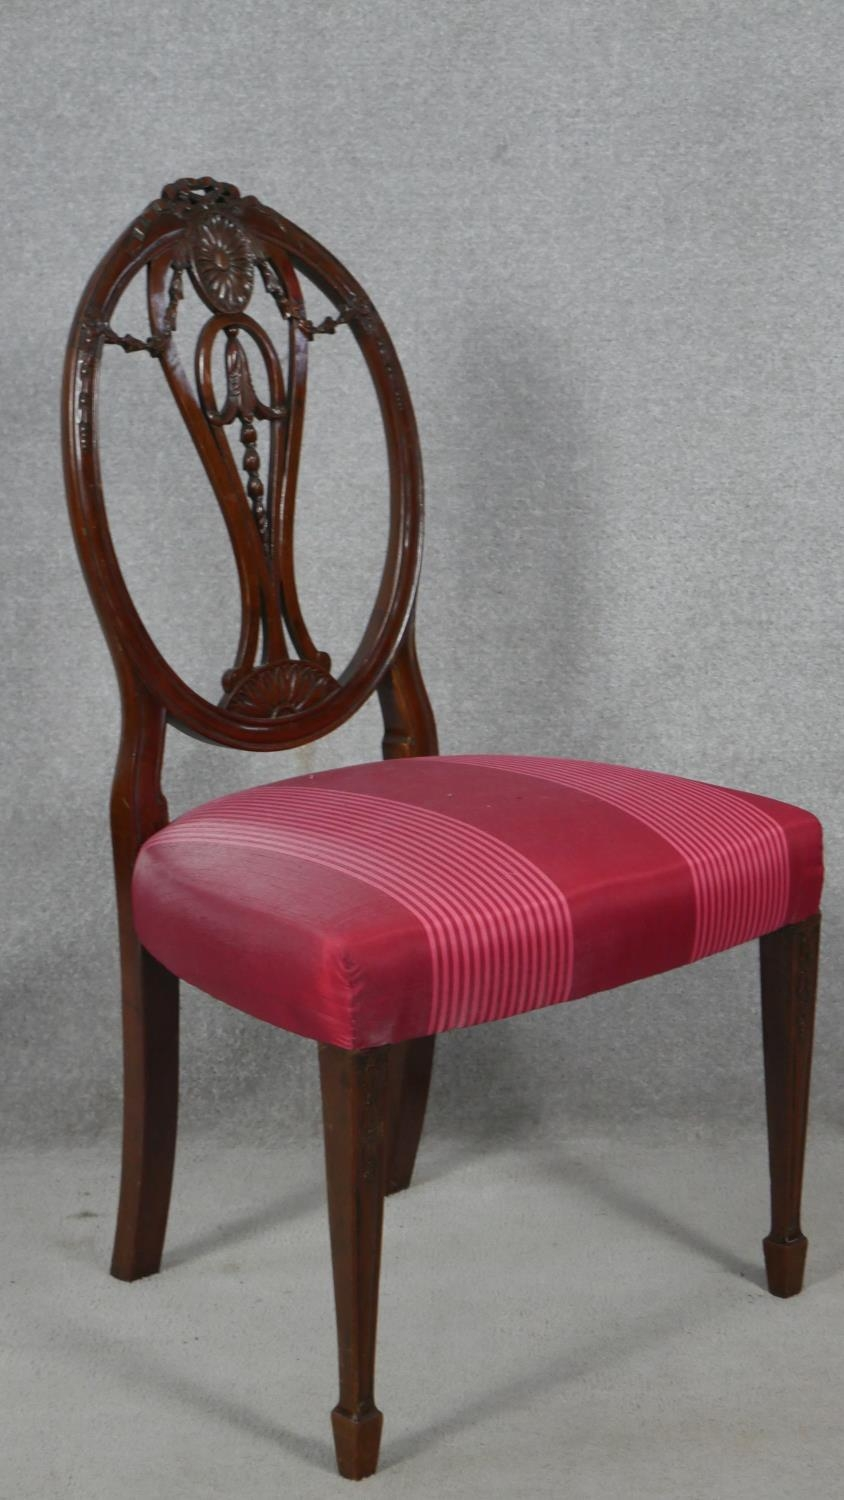 A 19th century mahogany dining chair with carved swag and ribbon detail to the back raised on square - Image 2 of 5